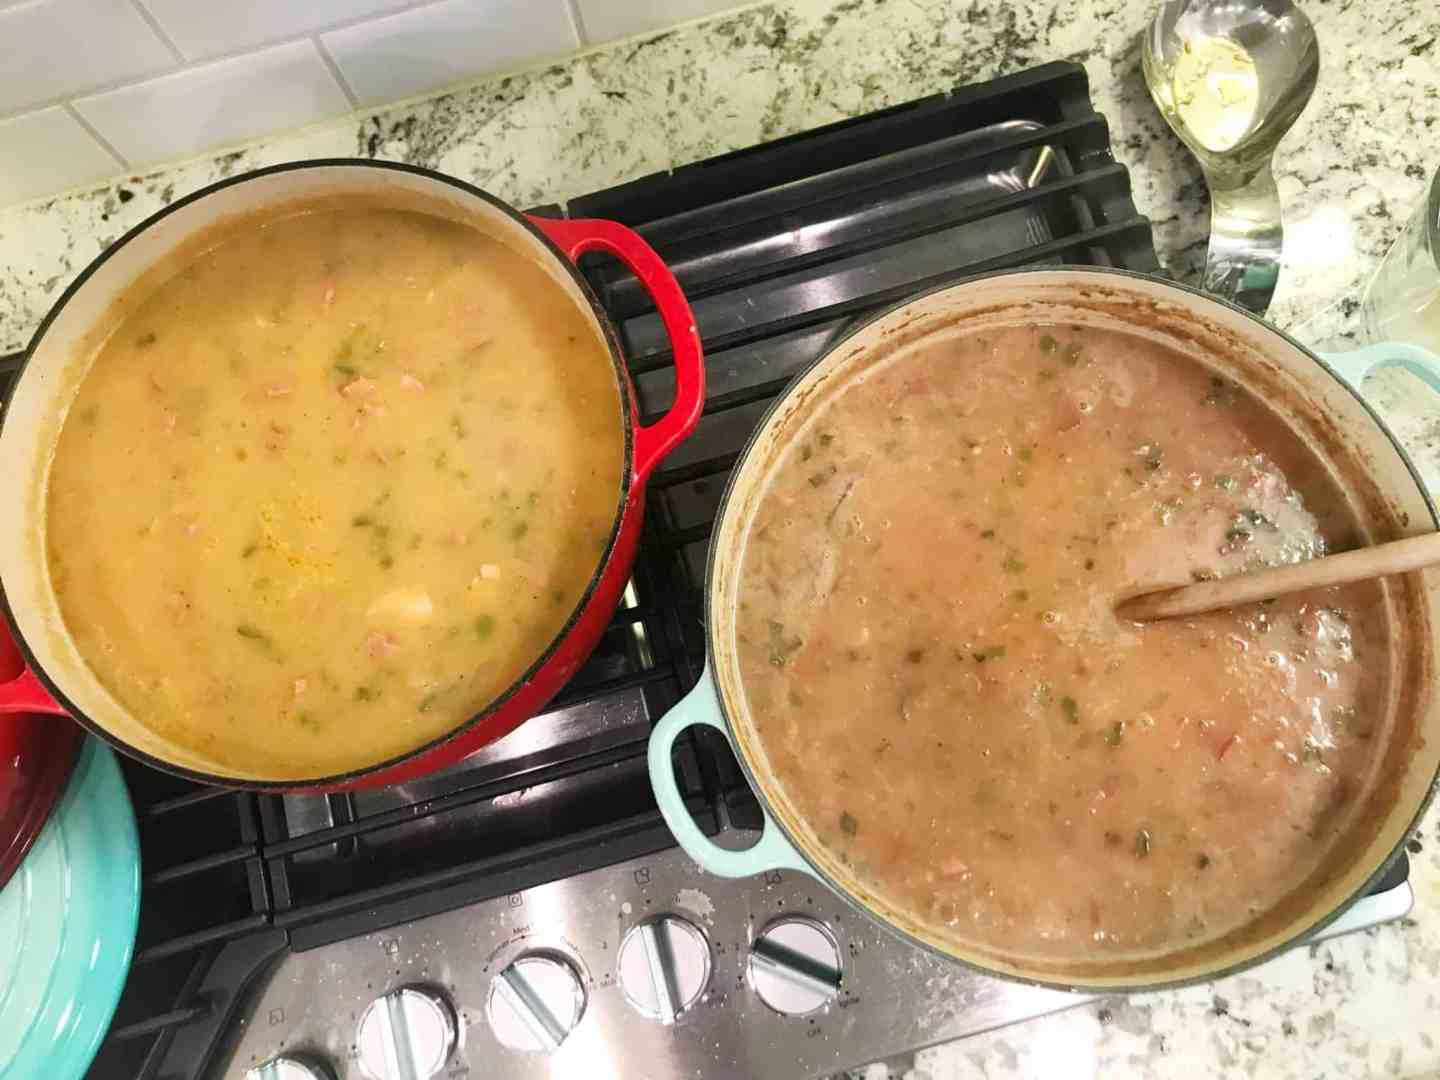 gumbo and red beans and rice